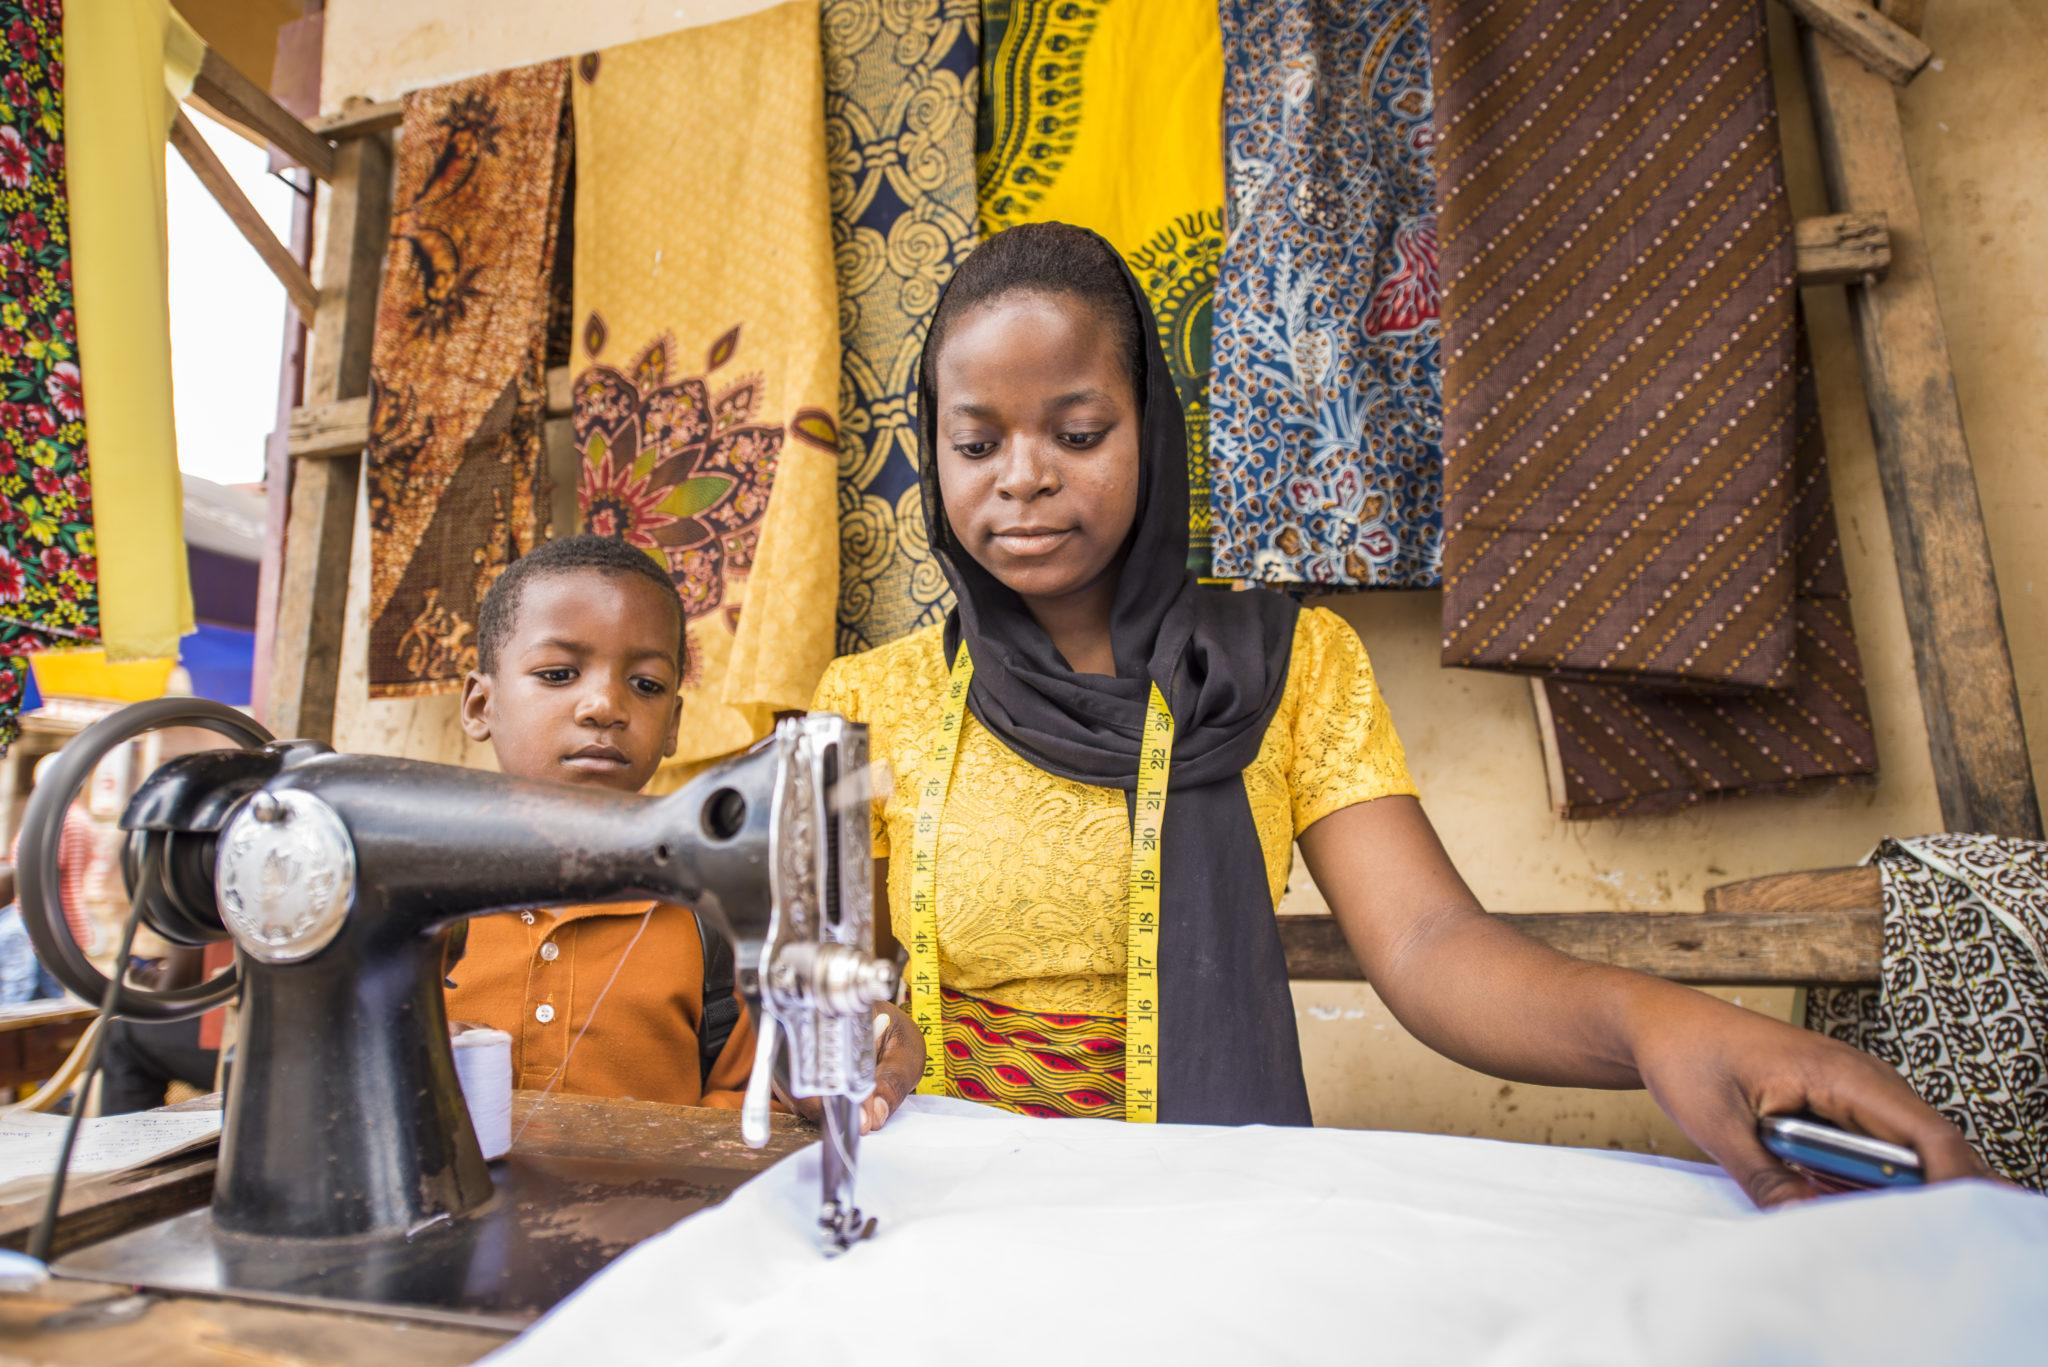 Person using a sewing machine and a child standing behind the person